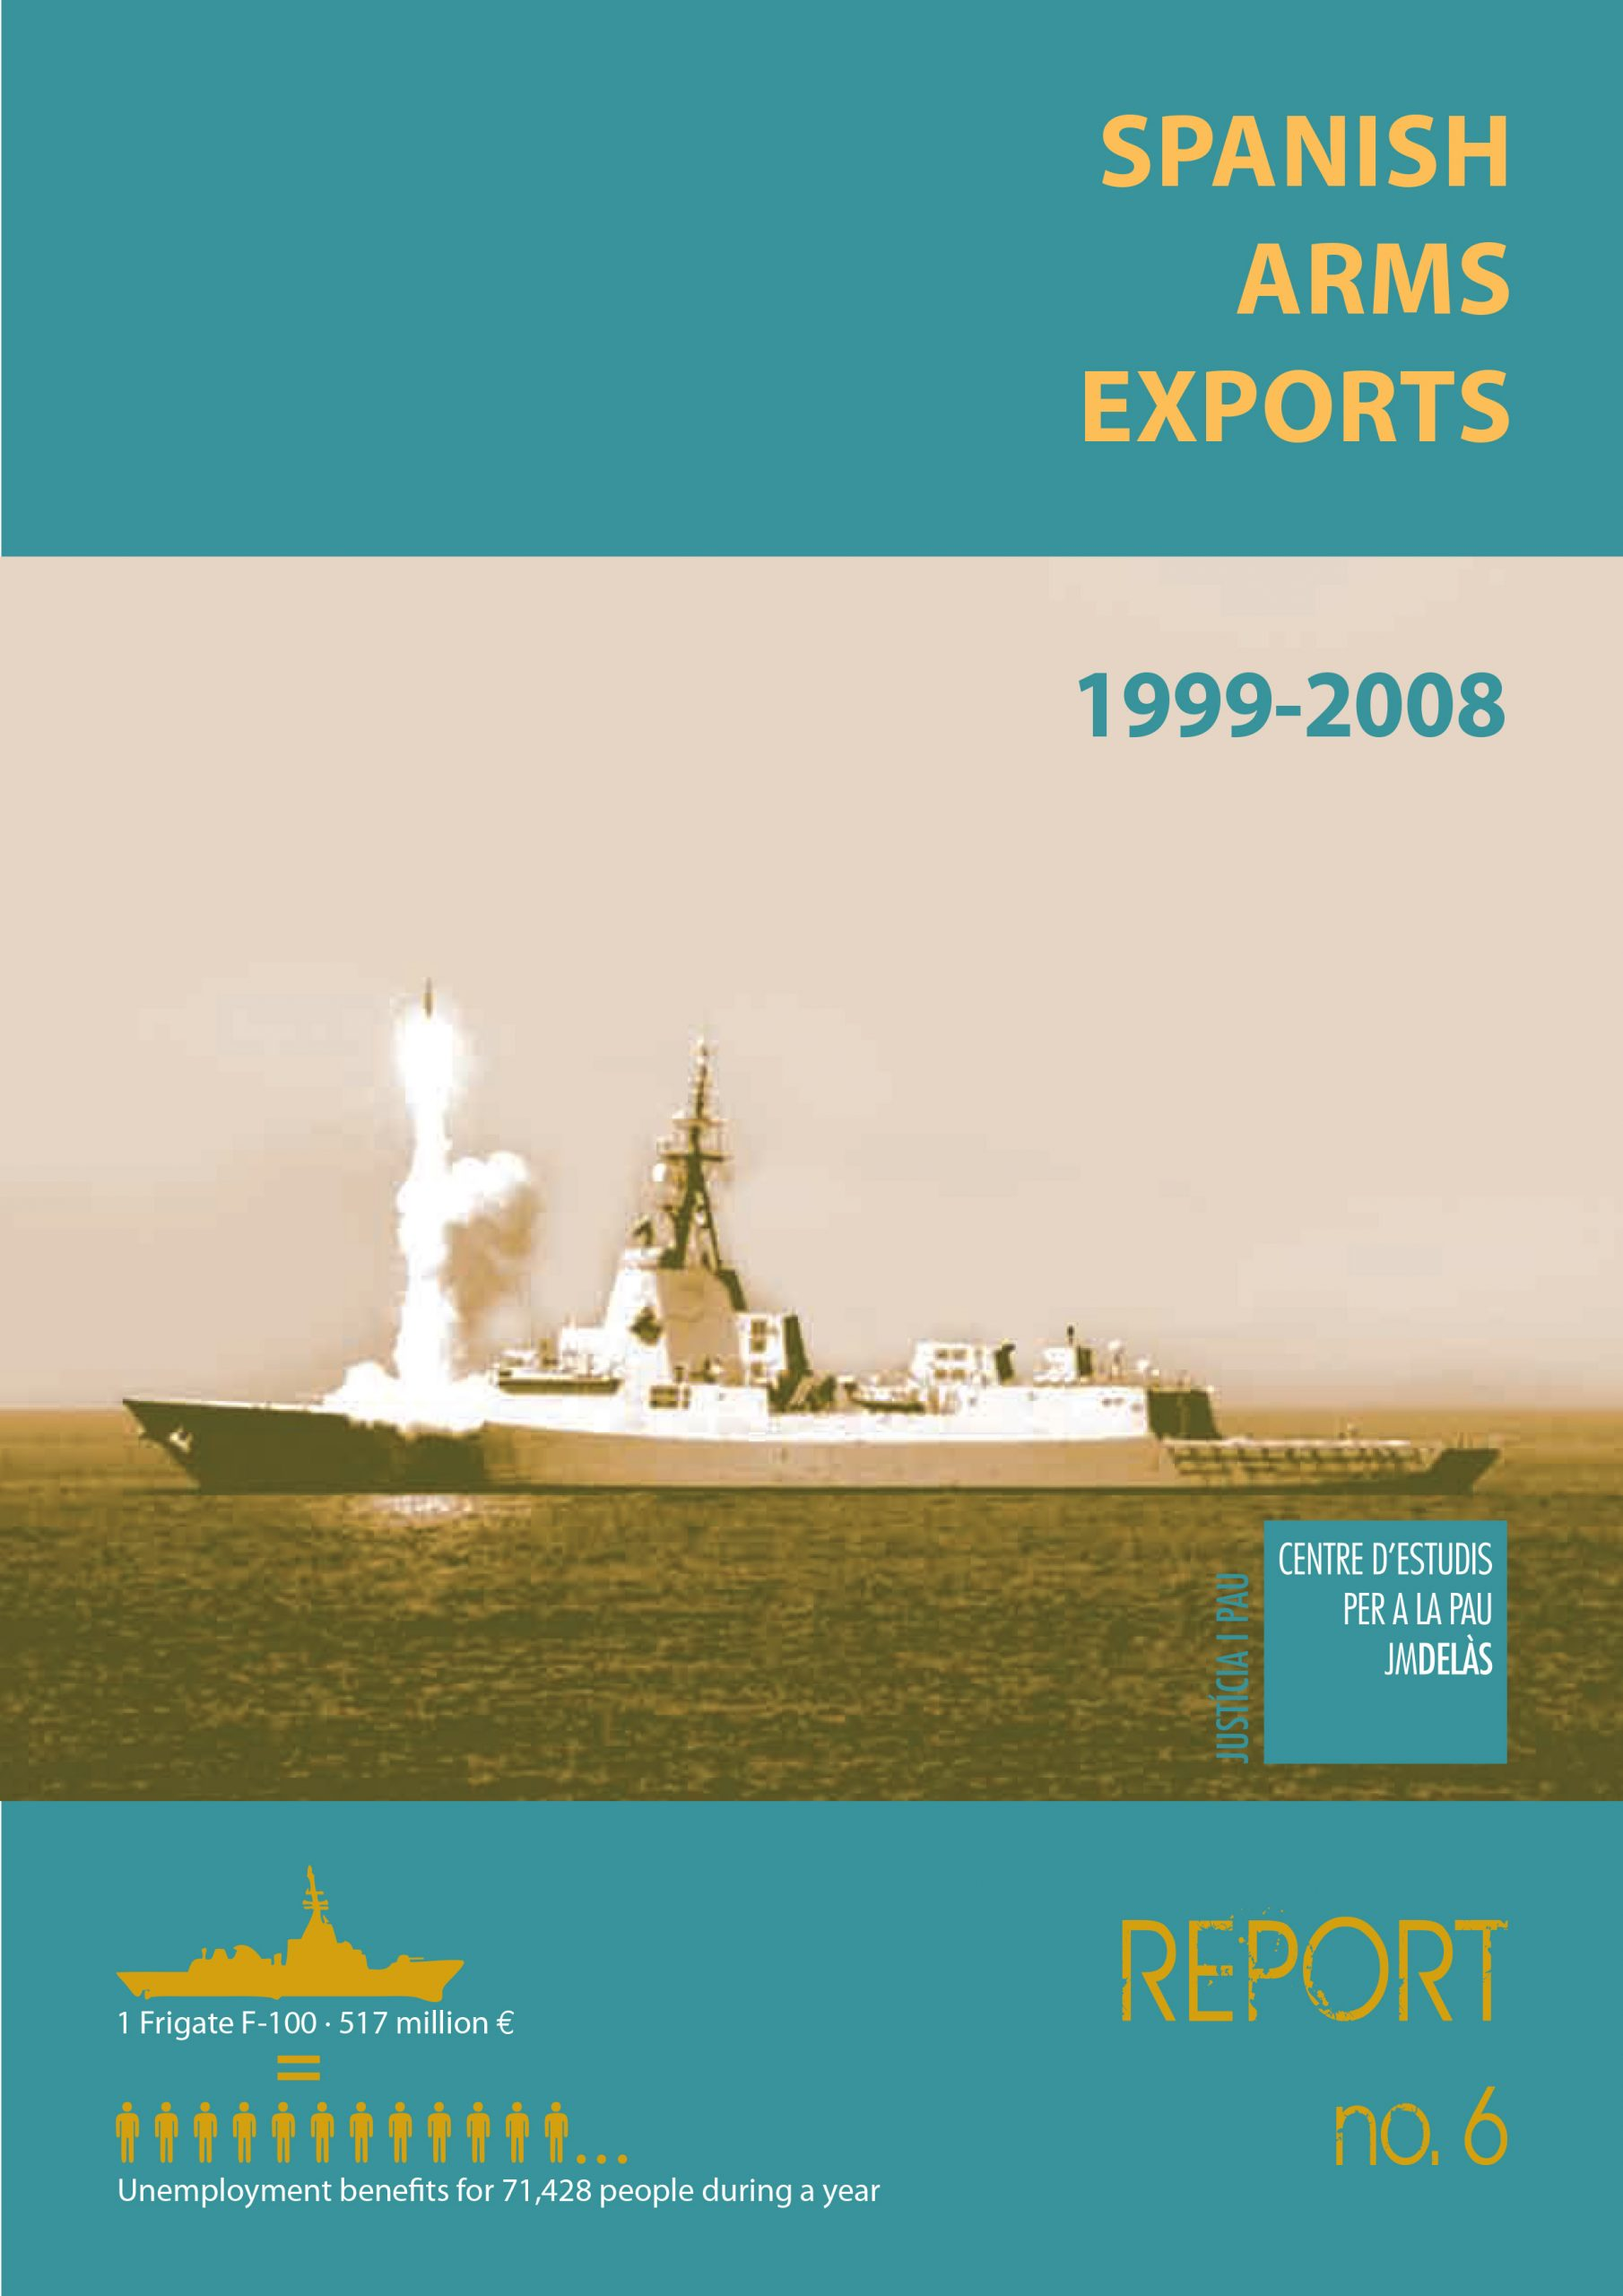 Report 6: Spanish arms exports 1999-2008